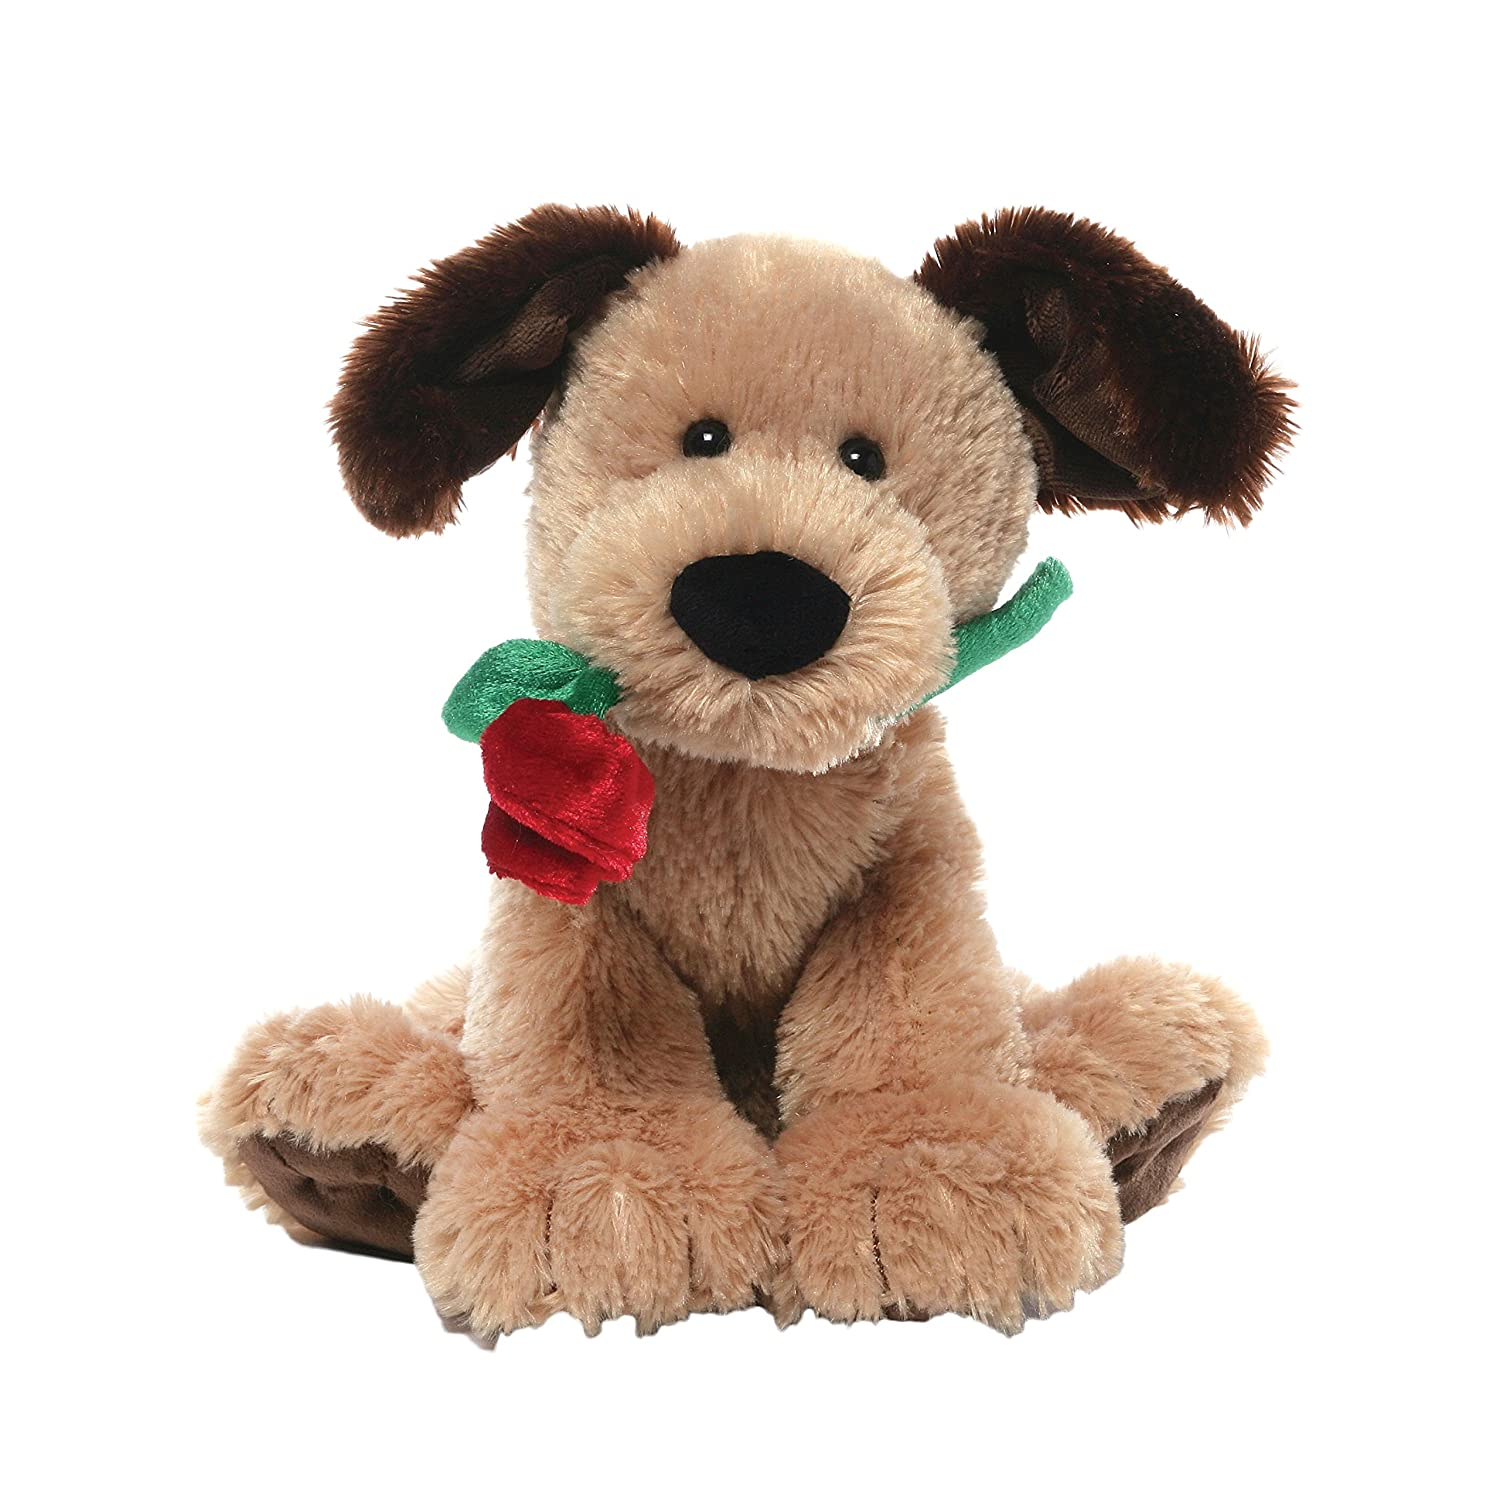 amazoncom gund deangelo valentines day dog stuffed animal plush toys games - Valentines Animals